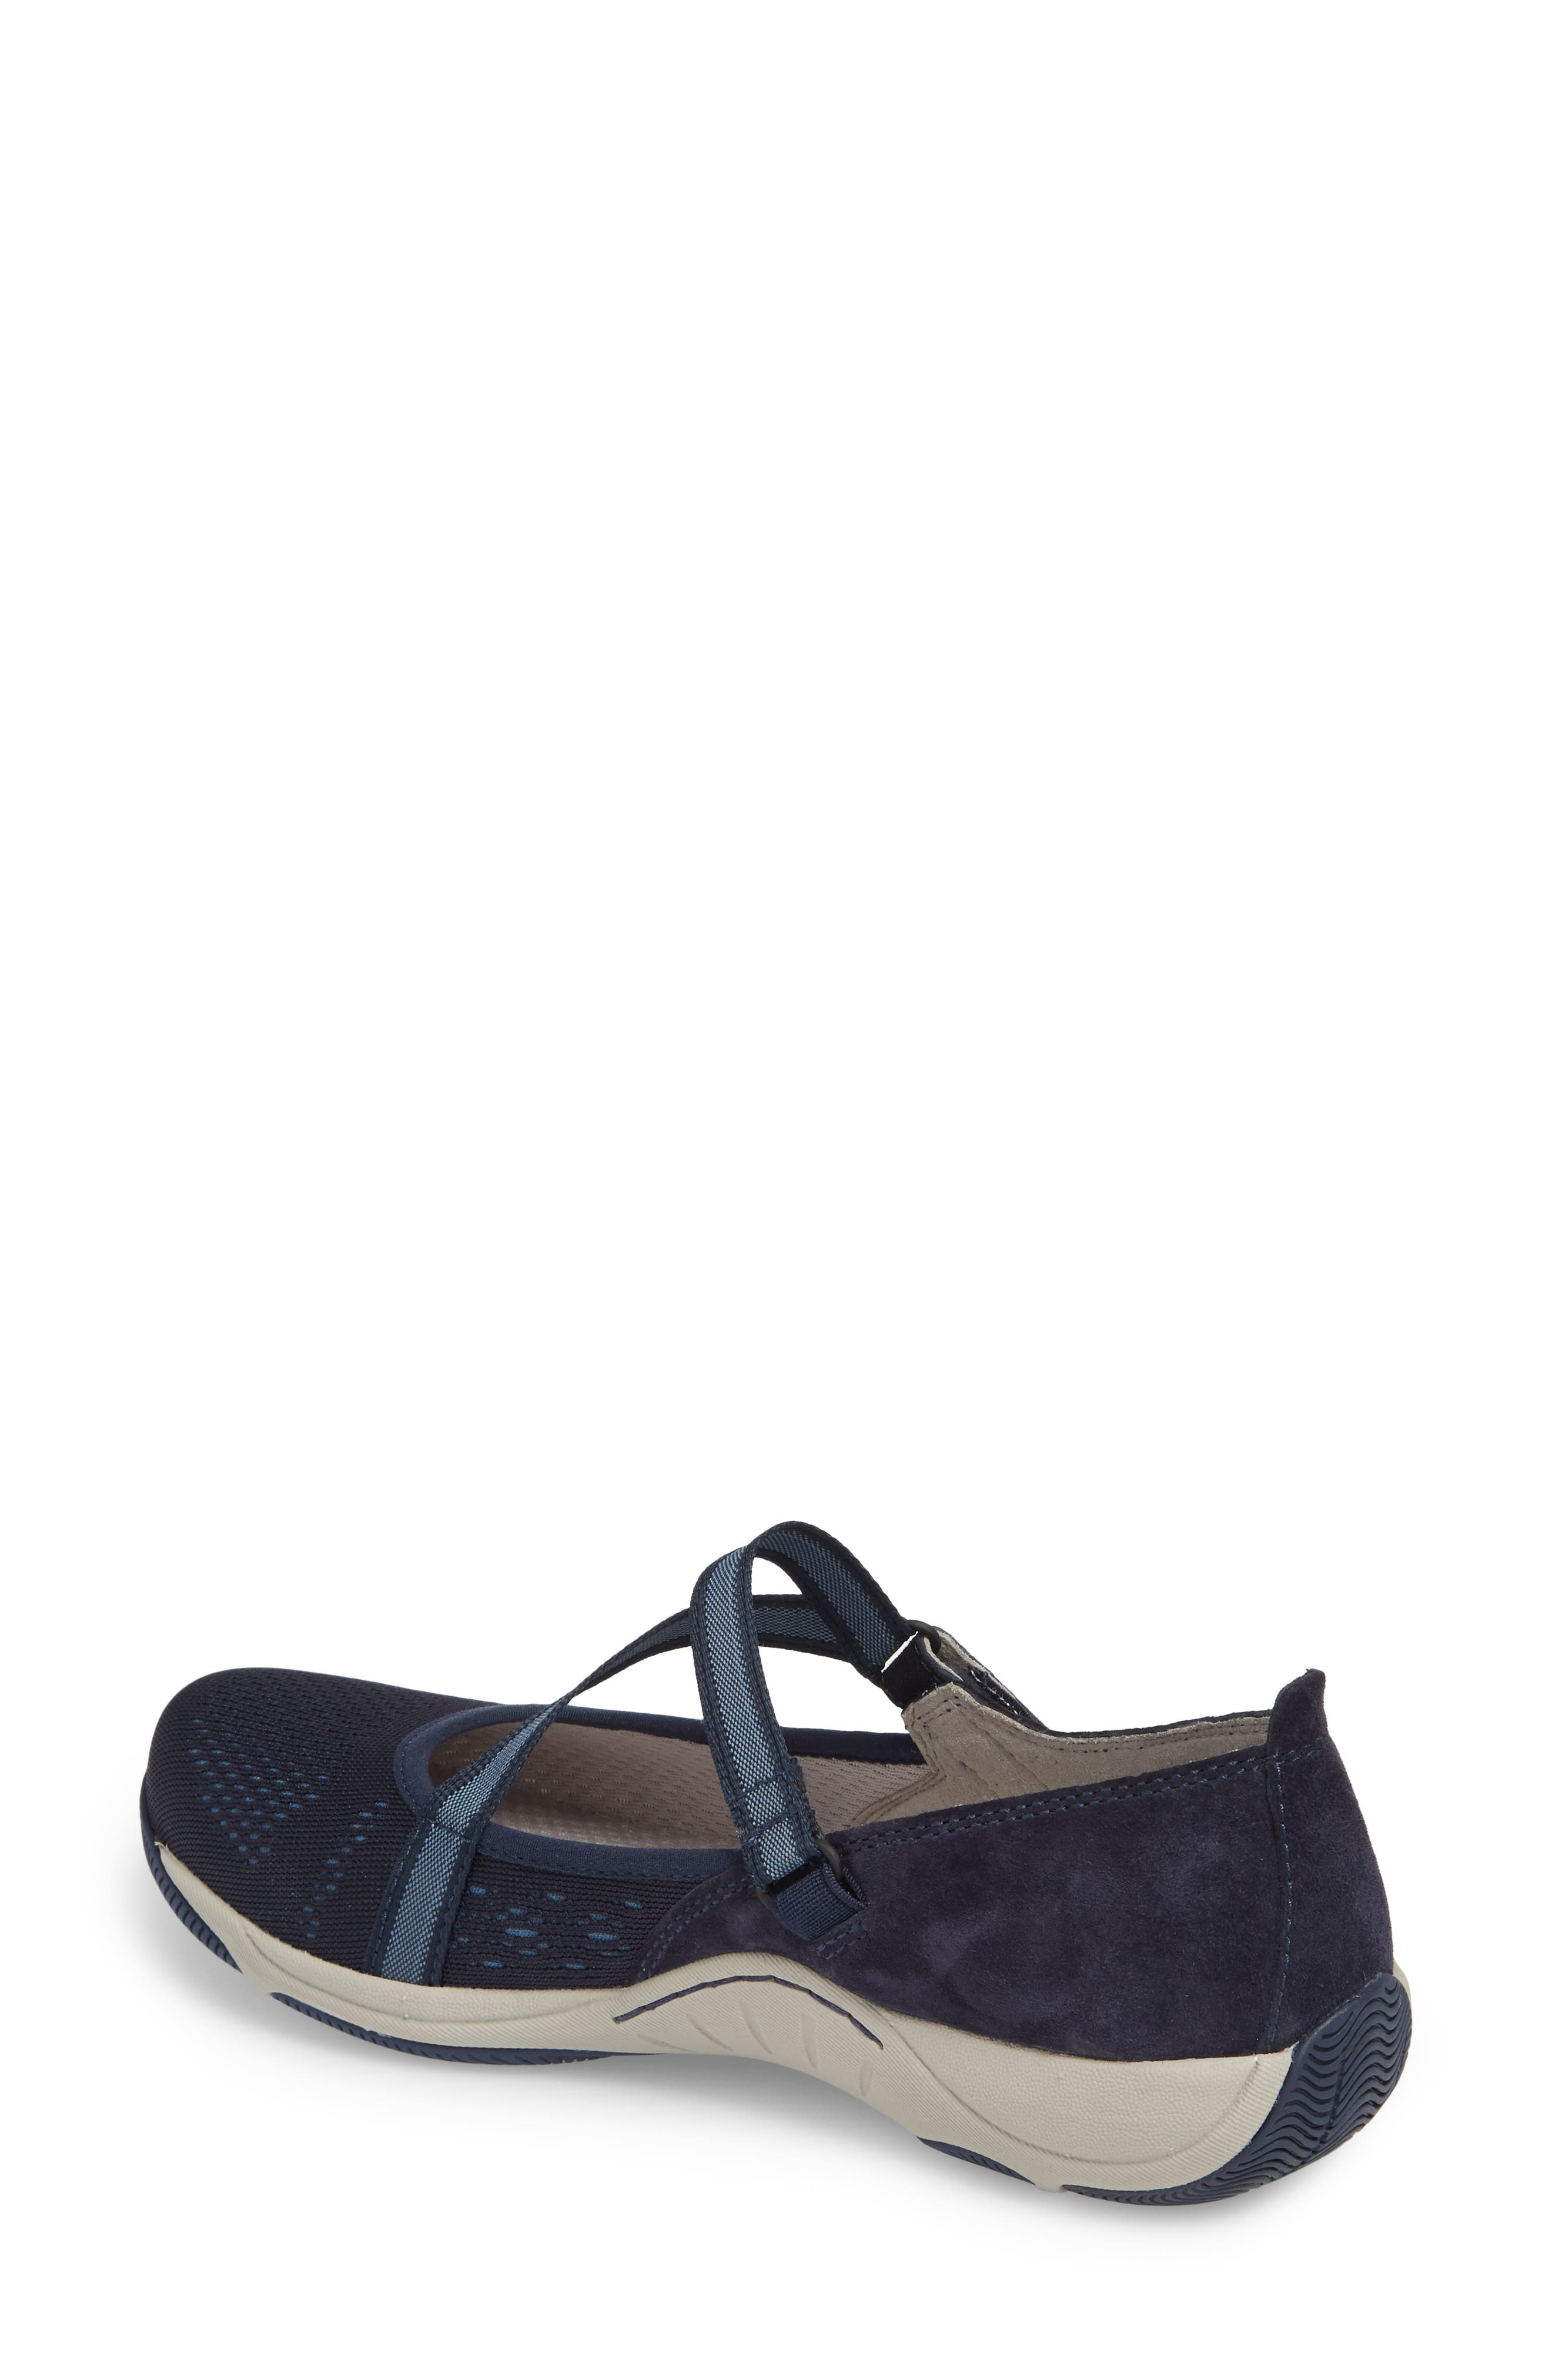 Haven Mary Jane Sneaker,                             Alternate thumbnail 2, color,                             Navy Suede